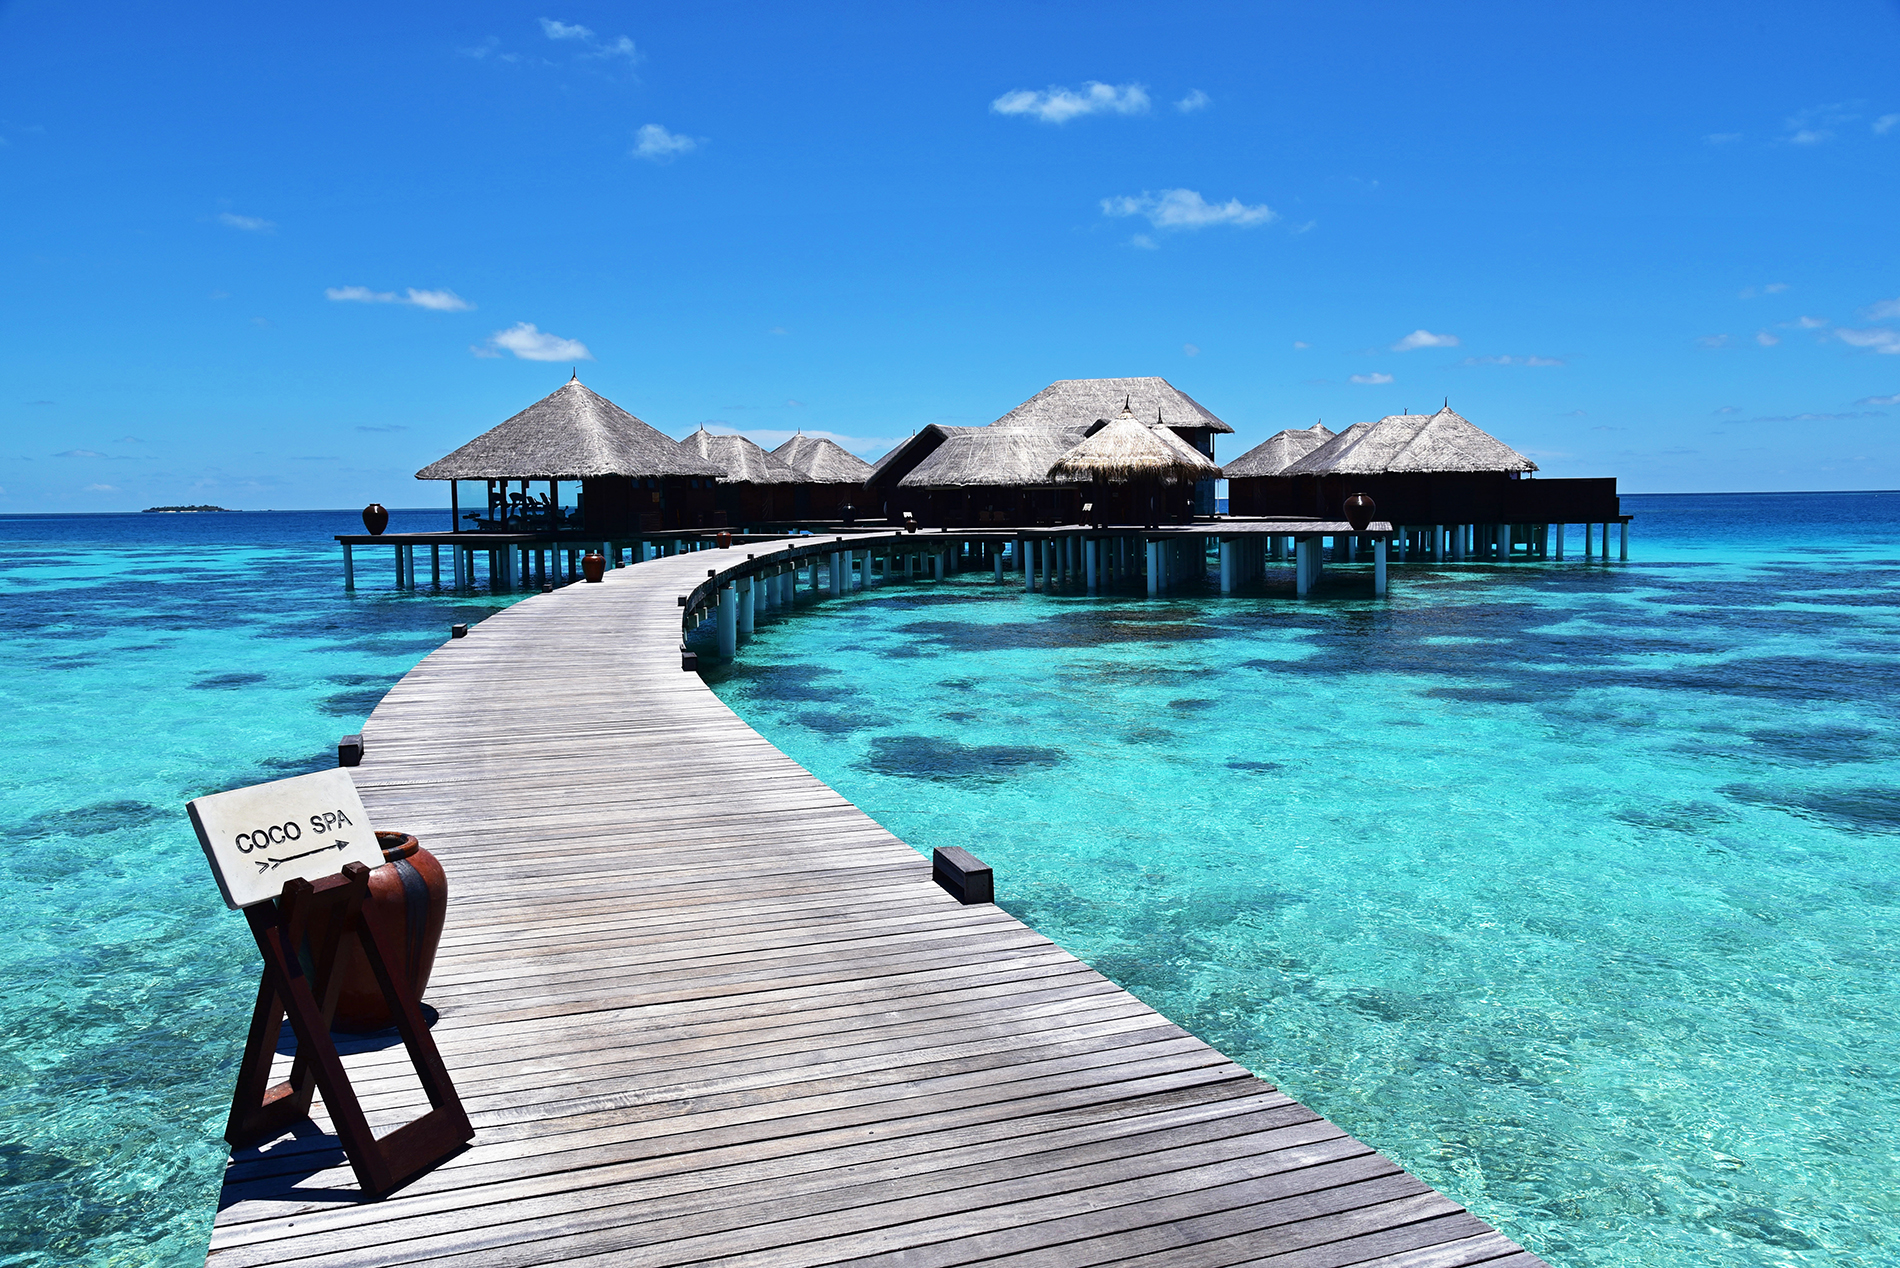 maldives-coco-bodu-hithi-28